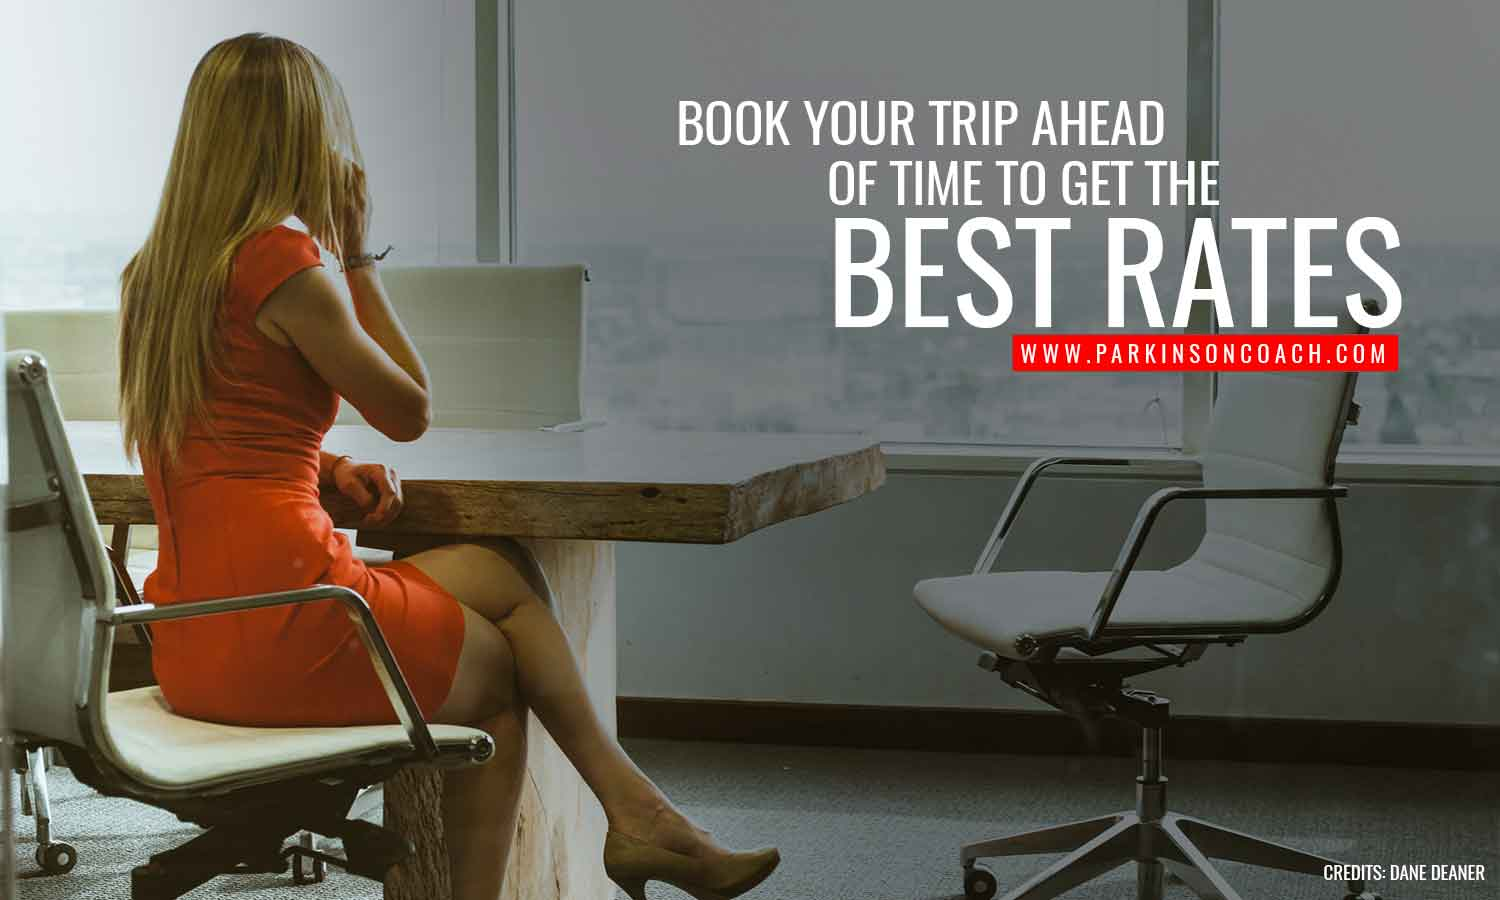 Book your trip ahead of time to get the best rates